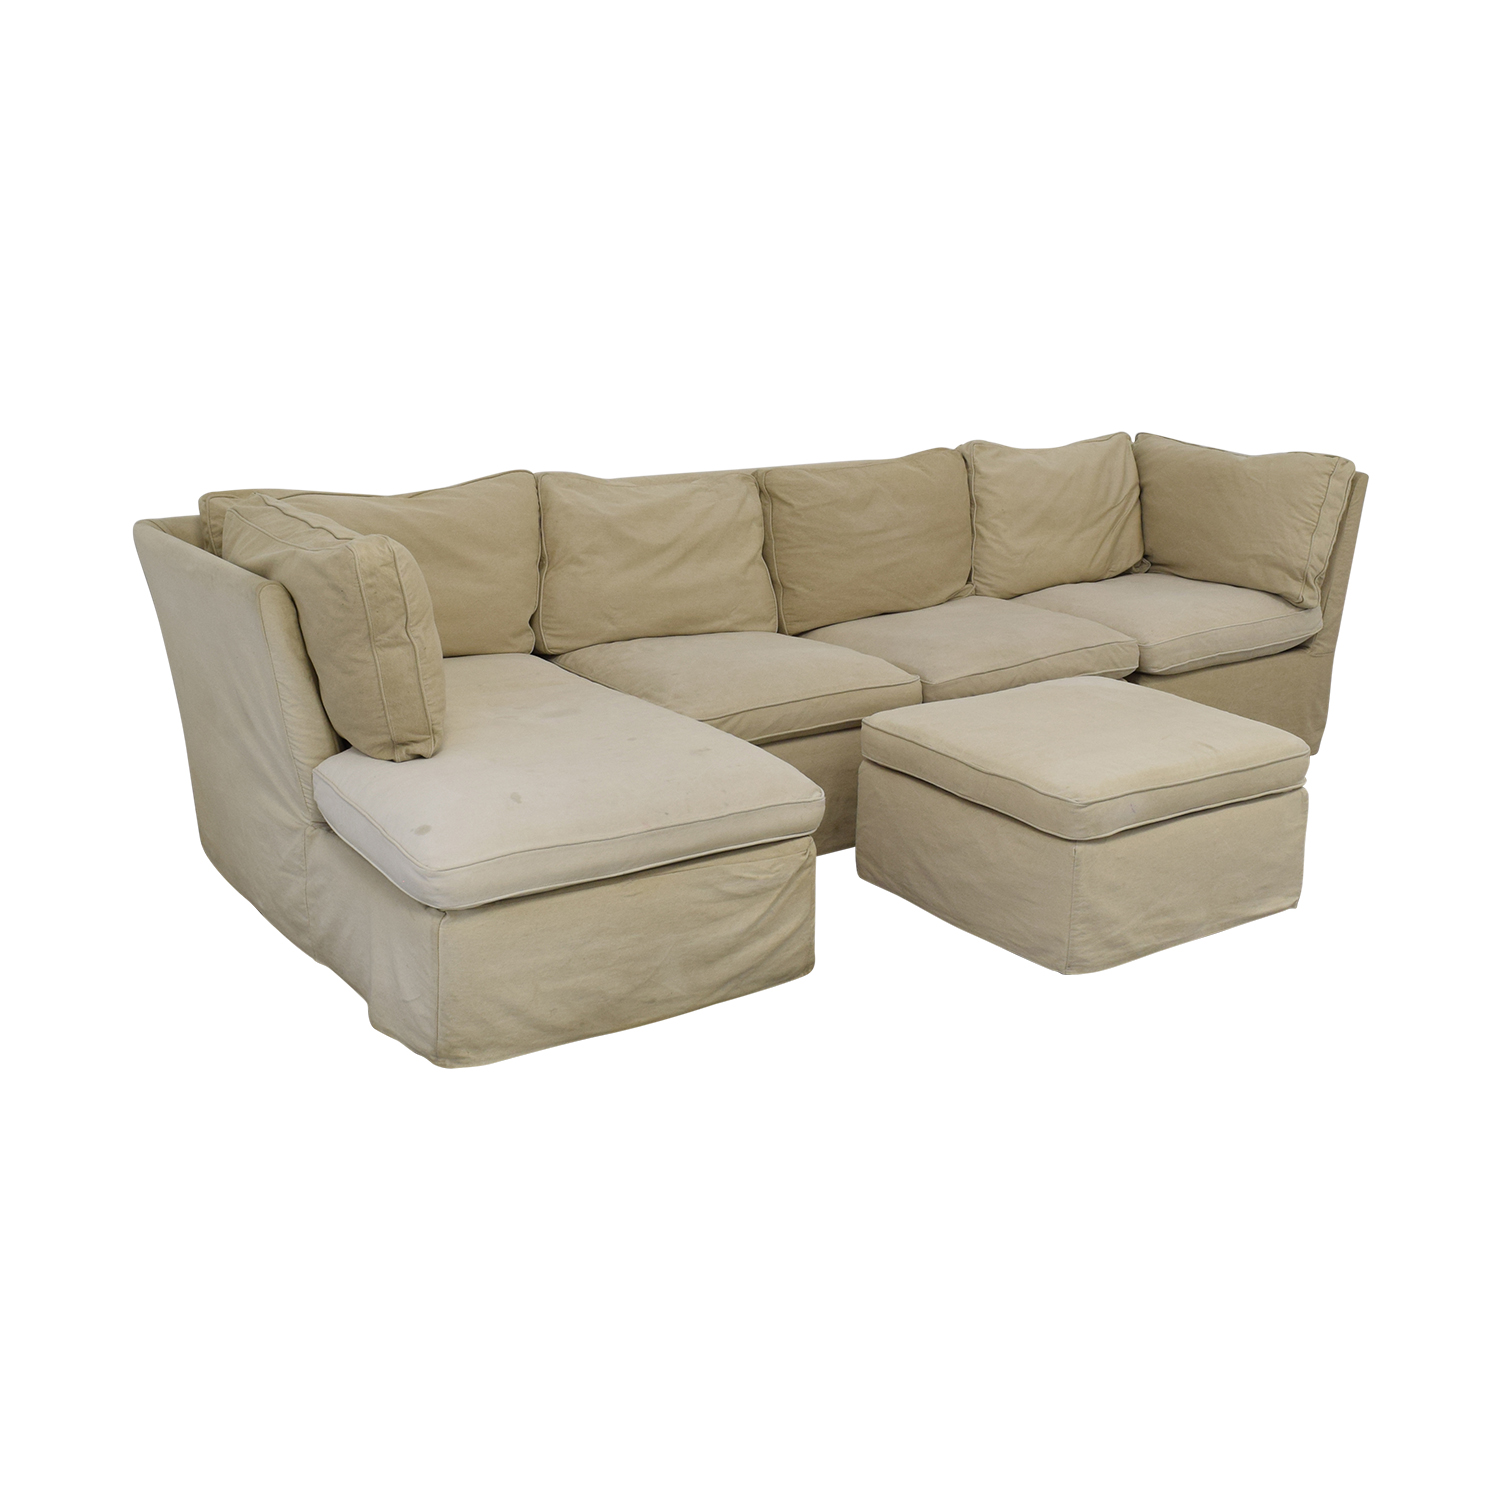 ABC Carpet & Home ABC Carpet & Home Sectional with Ottoman